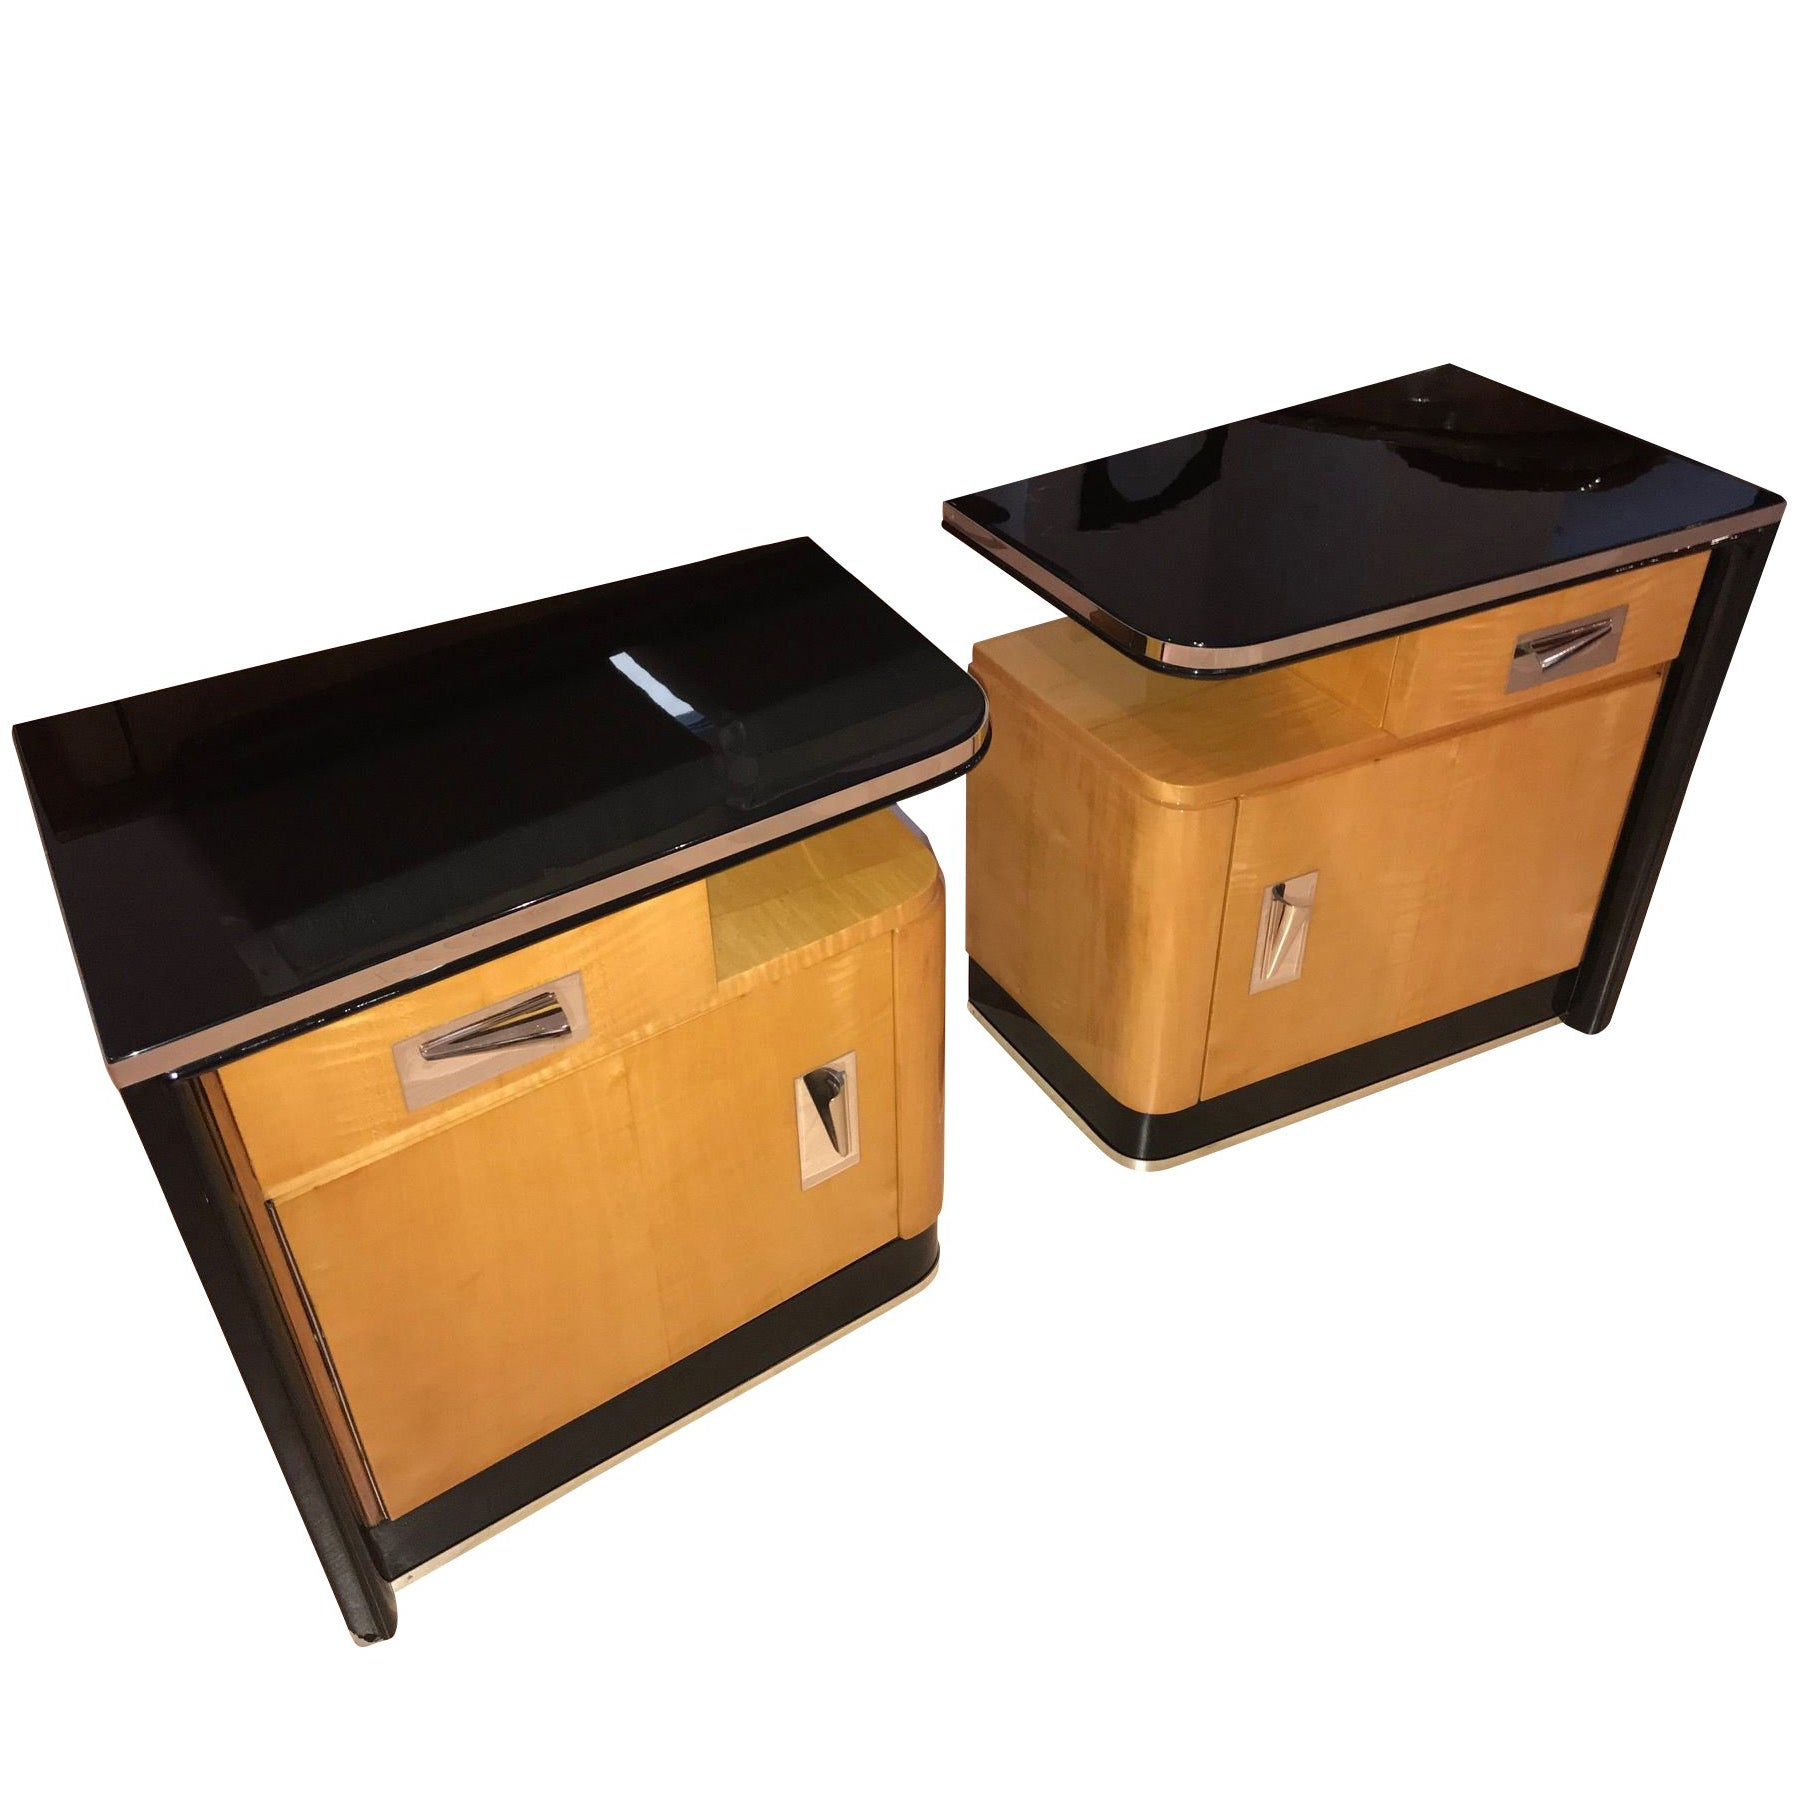 Pair of Art Deco Nightstands, Maple and Chrome, France, circa 1940